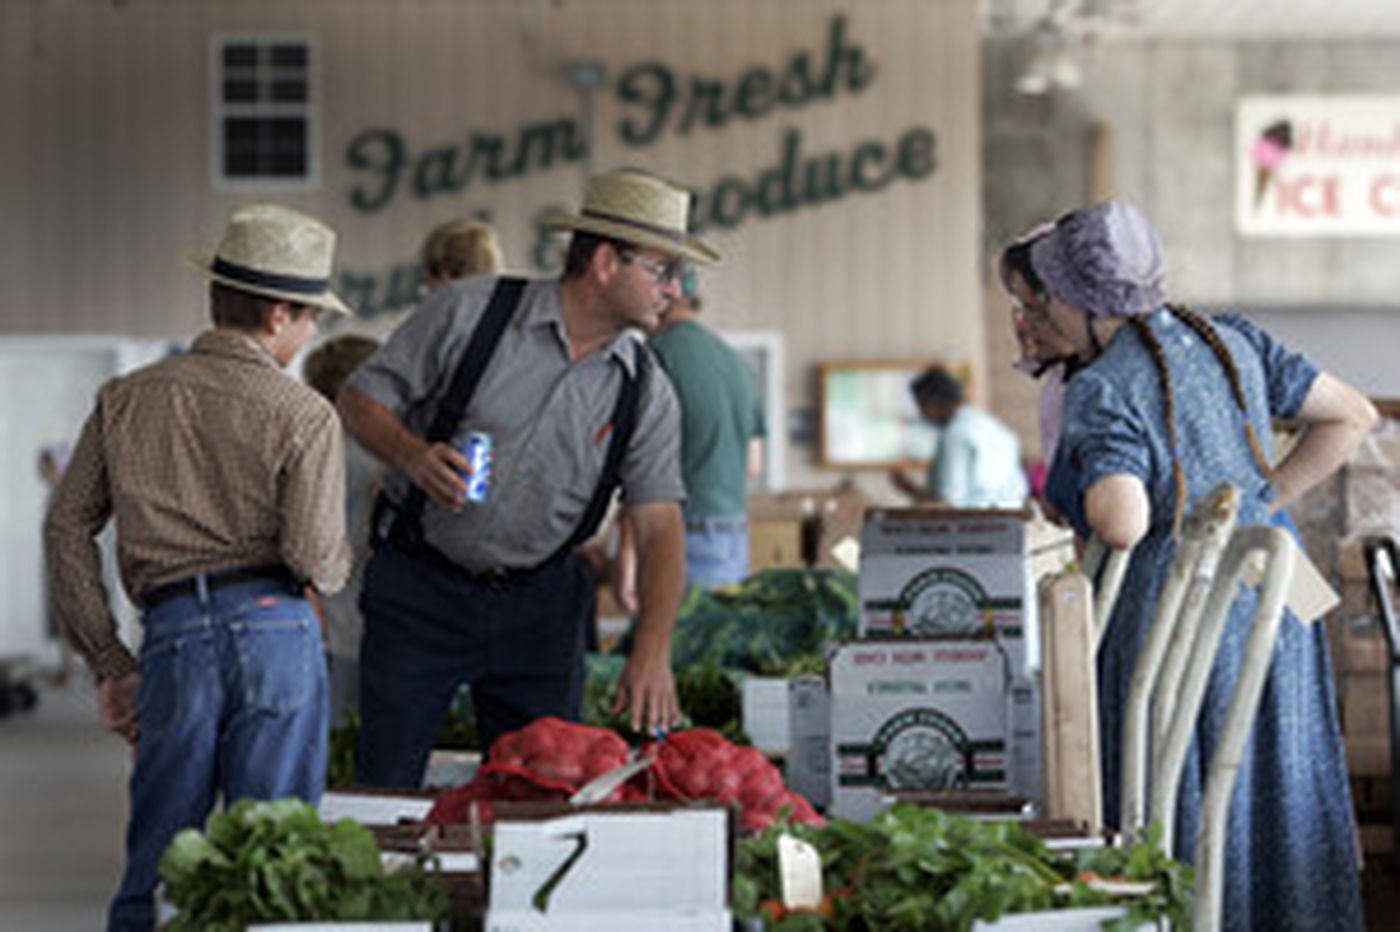 Growing pains for 'local grown' farmers